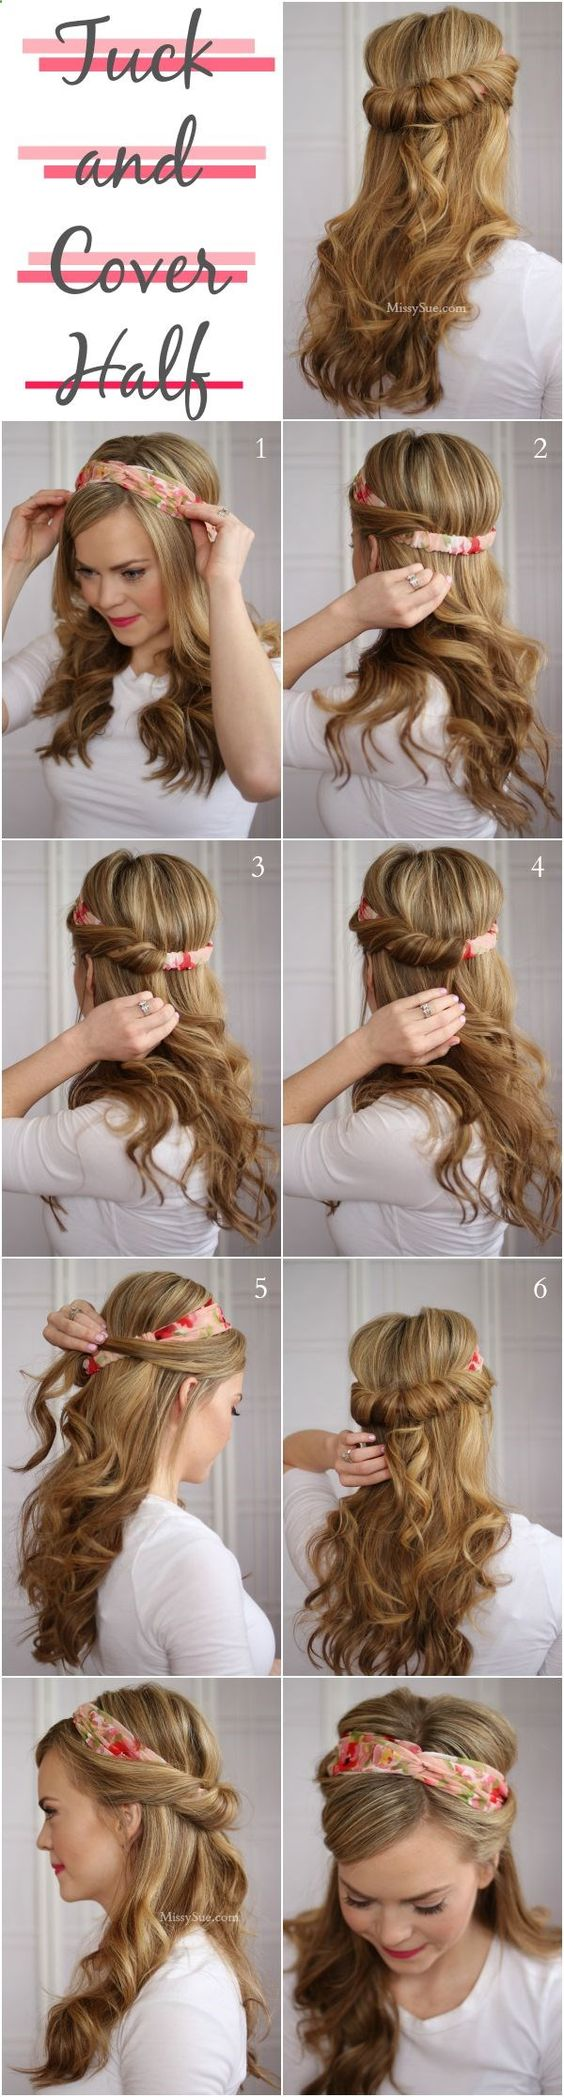 Bandeaux Fleurs Coiffures Avec Headband And Girly On Pinterest